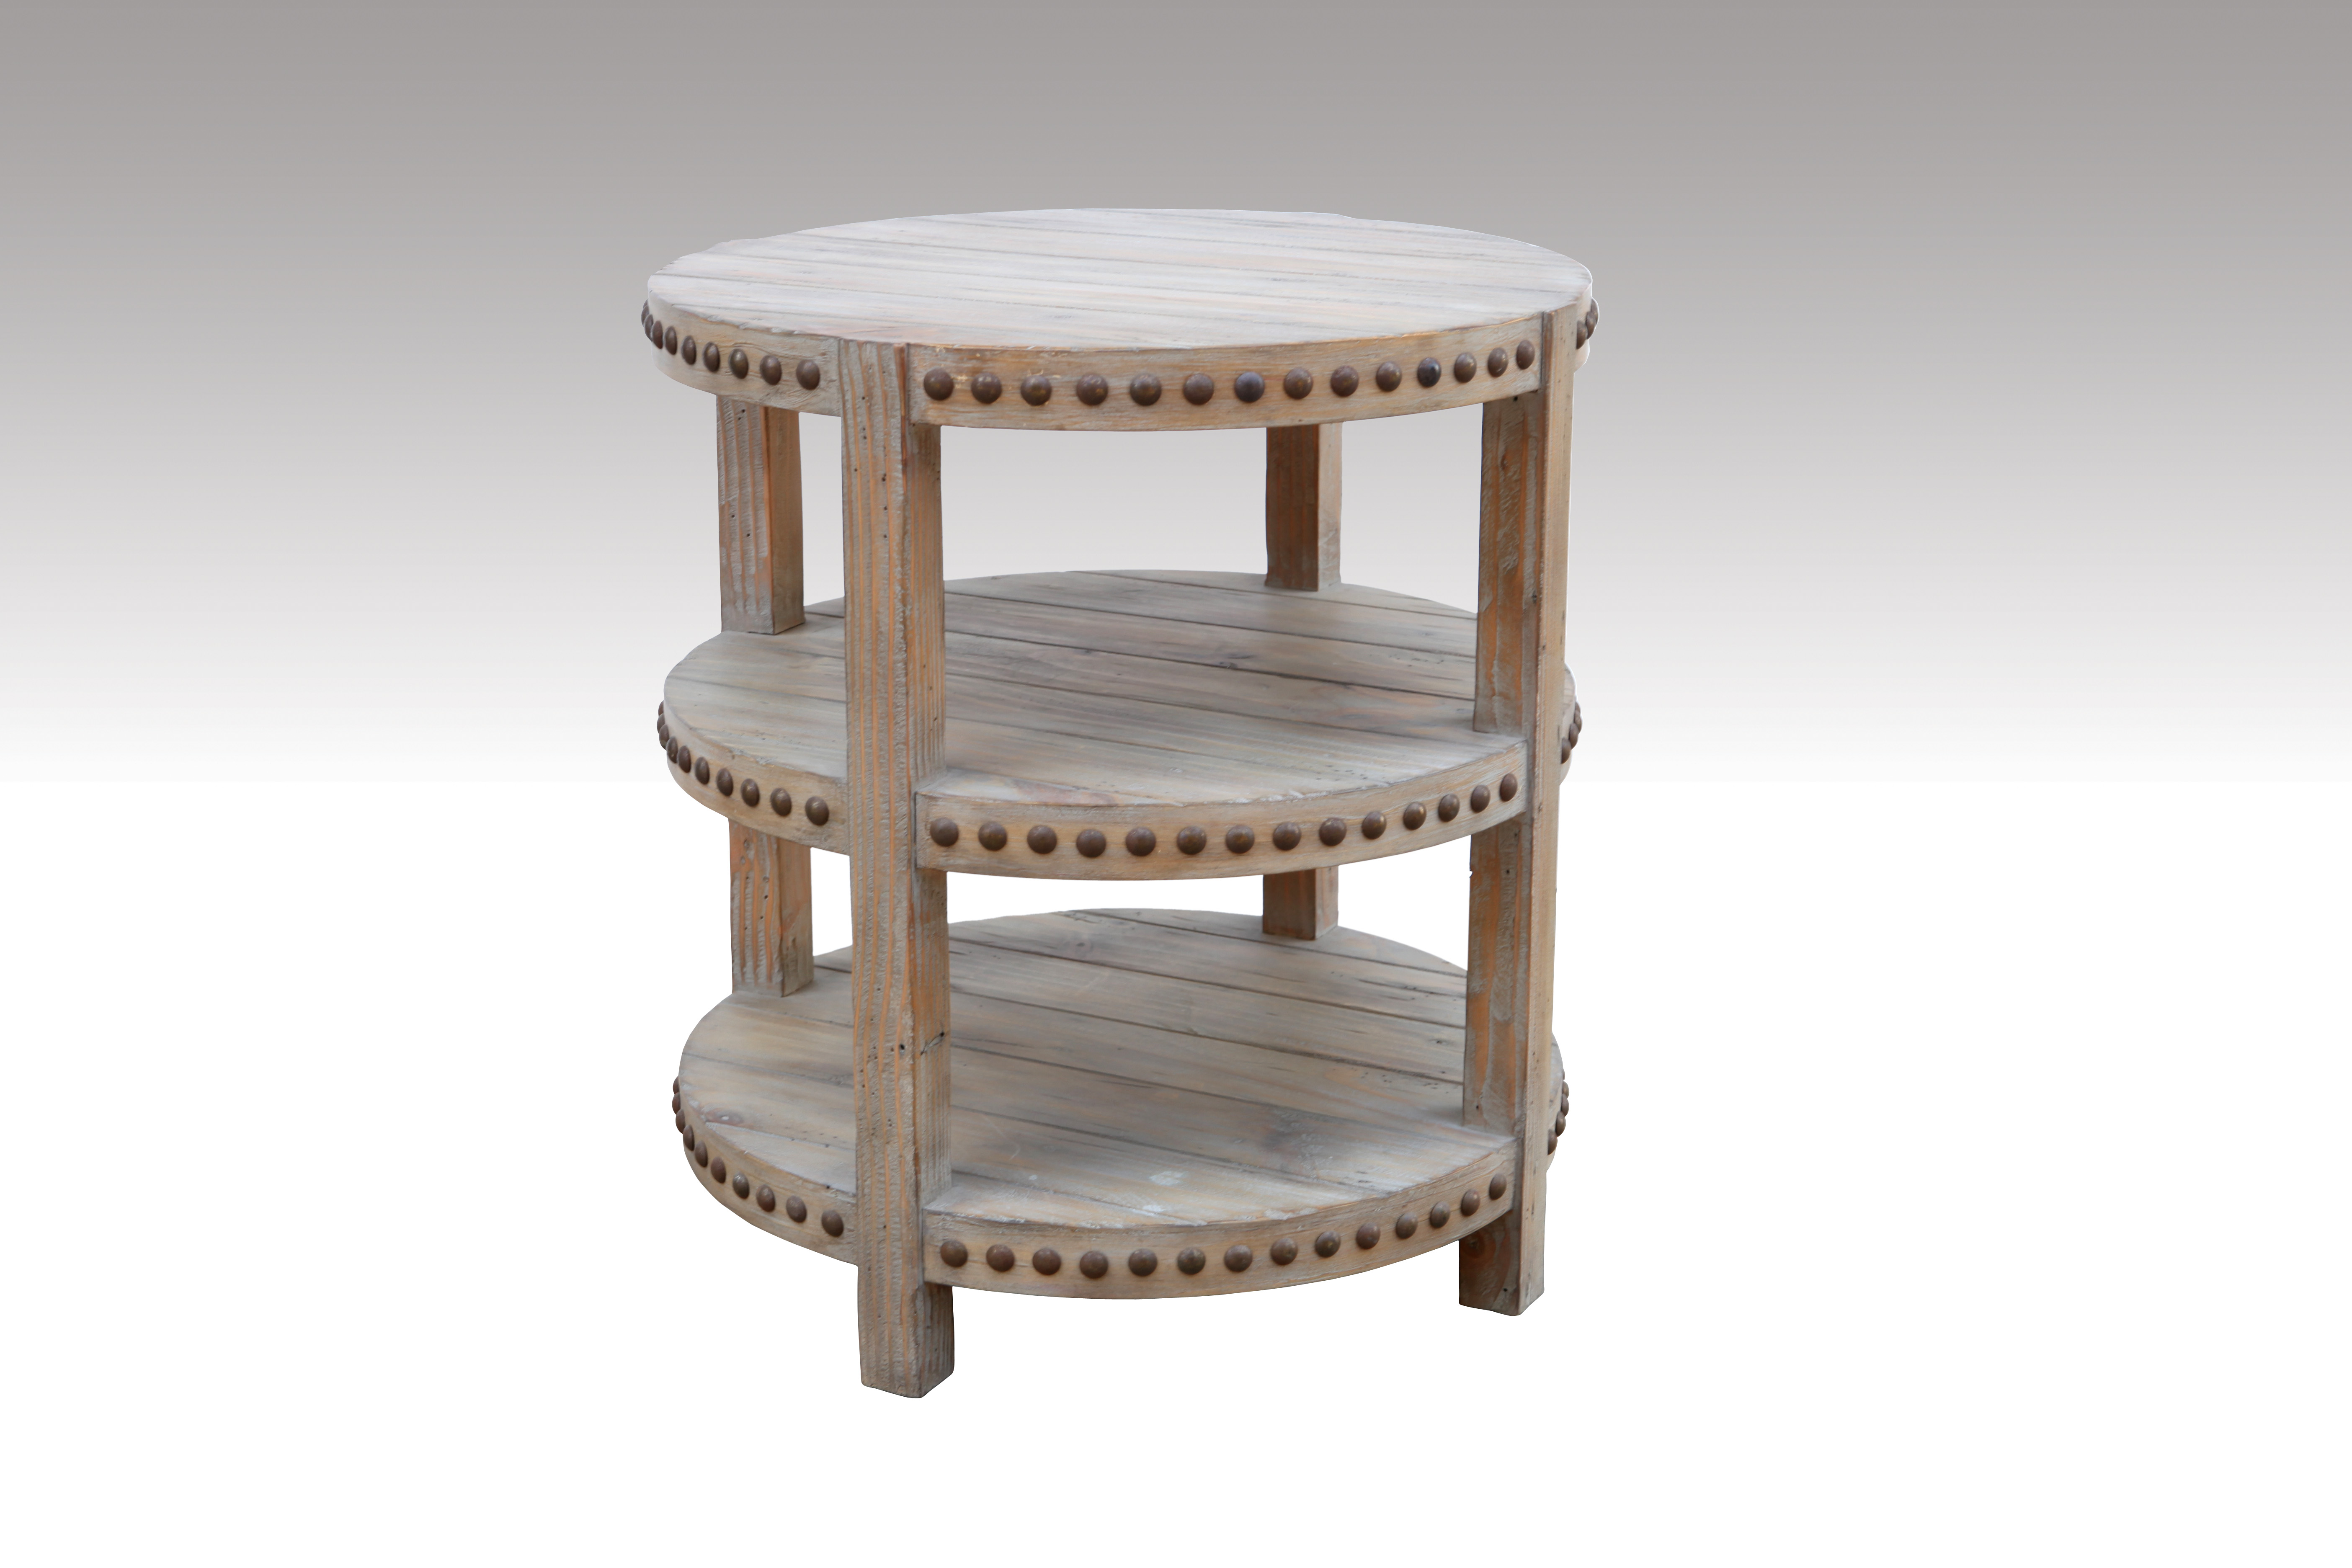 Home Furniture Classical 3 Shelves Round Table Biege Antique Pine Solid Wood